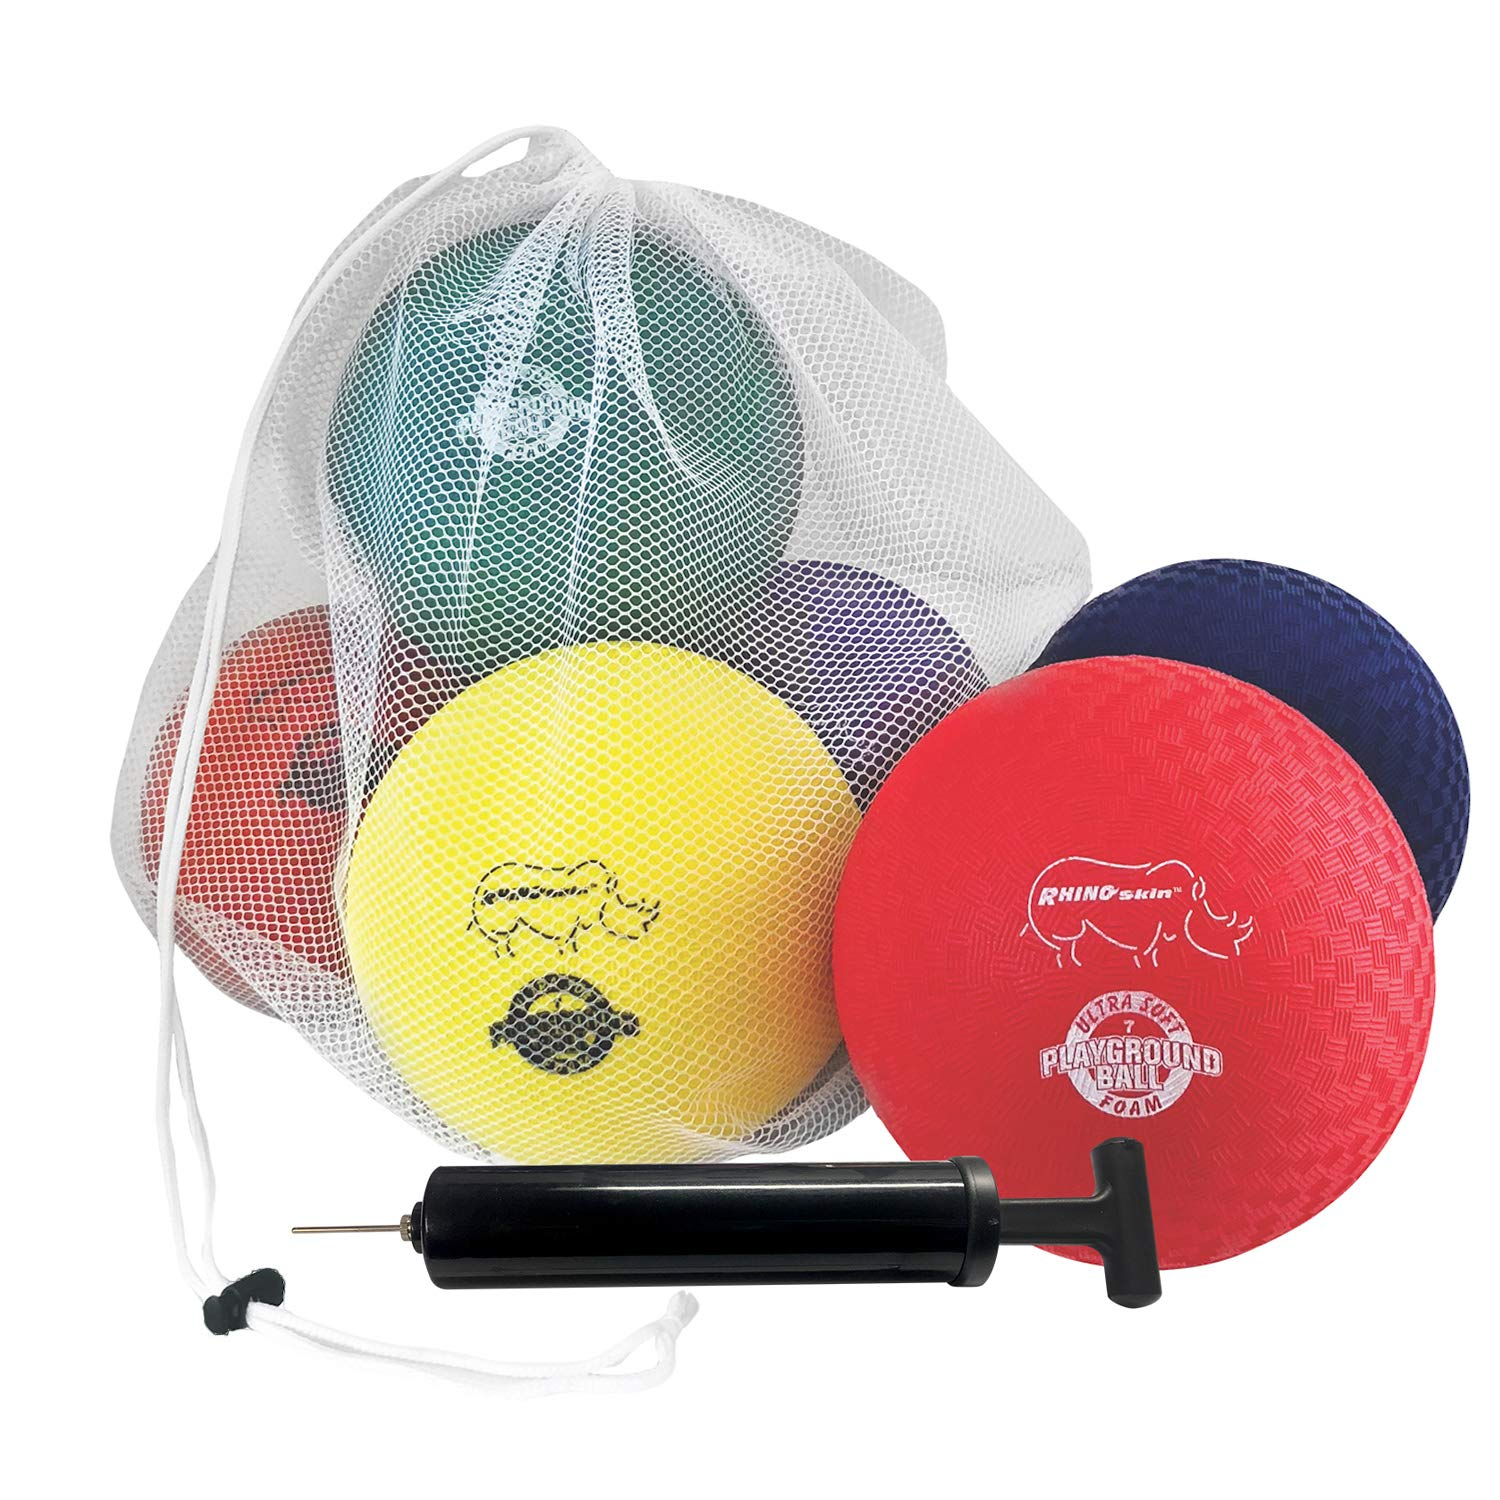 Champion Sports RSPG7SET Playground Ball Set: Six 7 Inch Rhino Skin Soft Inflatable Balls for Kids Outdoor & Backyard Games, School & Gym Class - Includes Storage Bag and Pump by Champion Sports